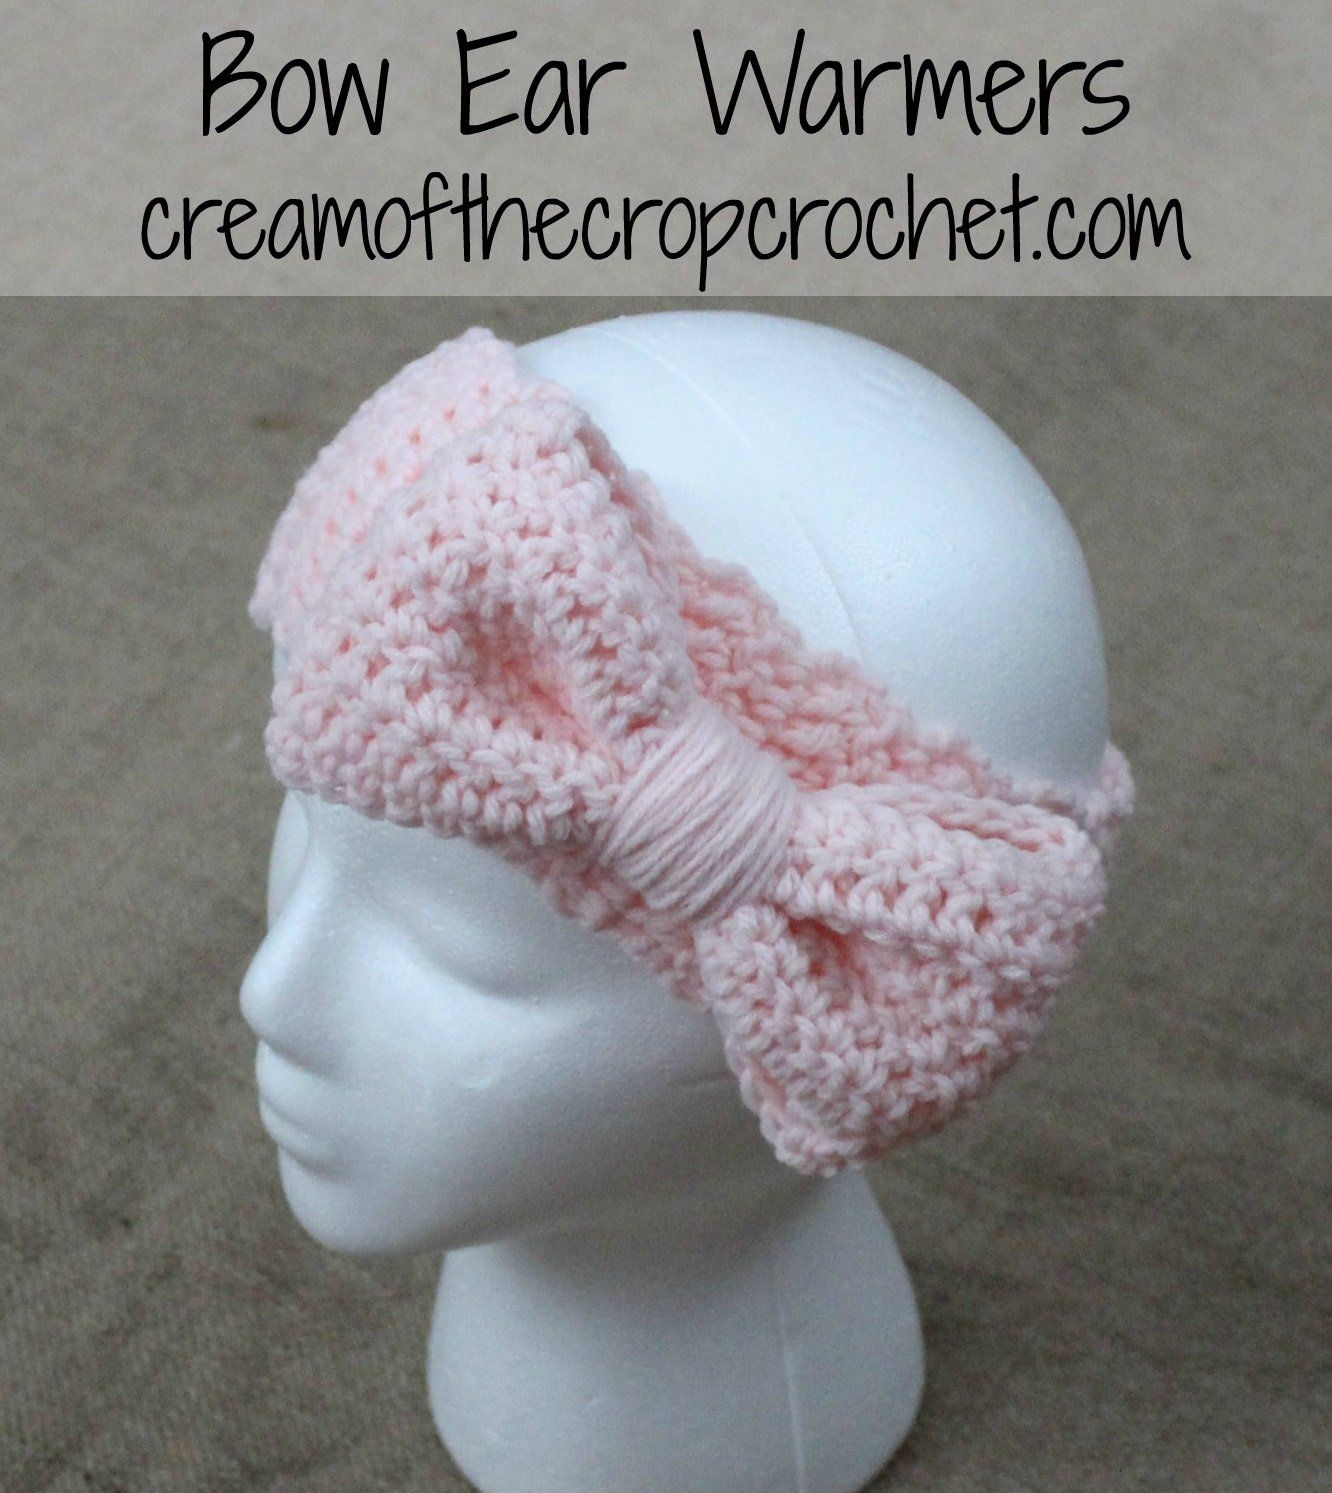 Samantha Ear Warmers Crochet Pattern | Crochet | Pinterest ...